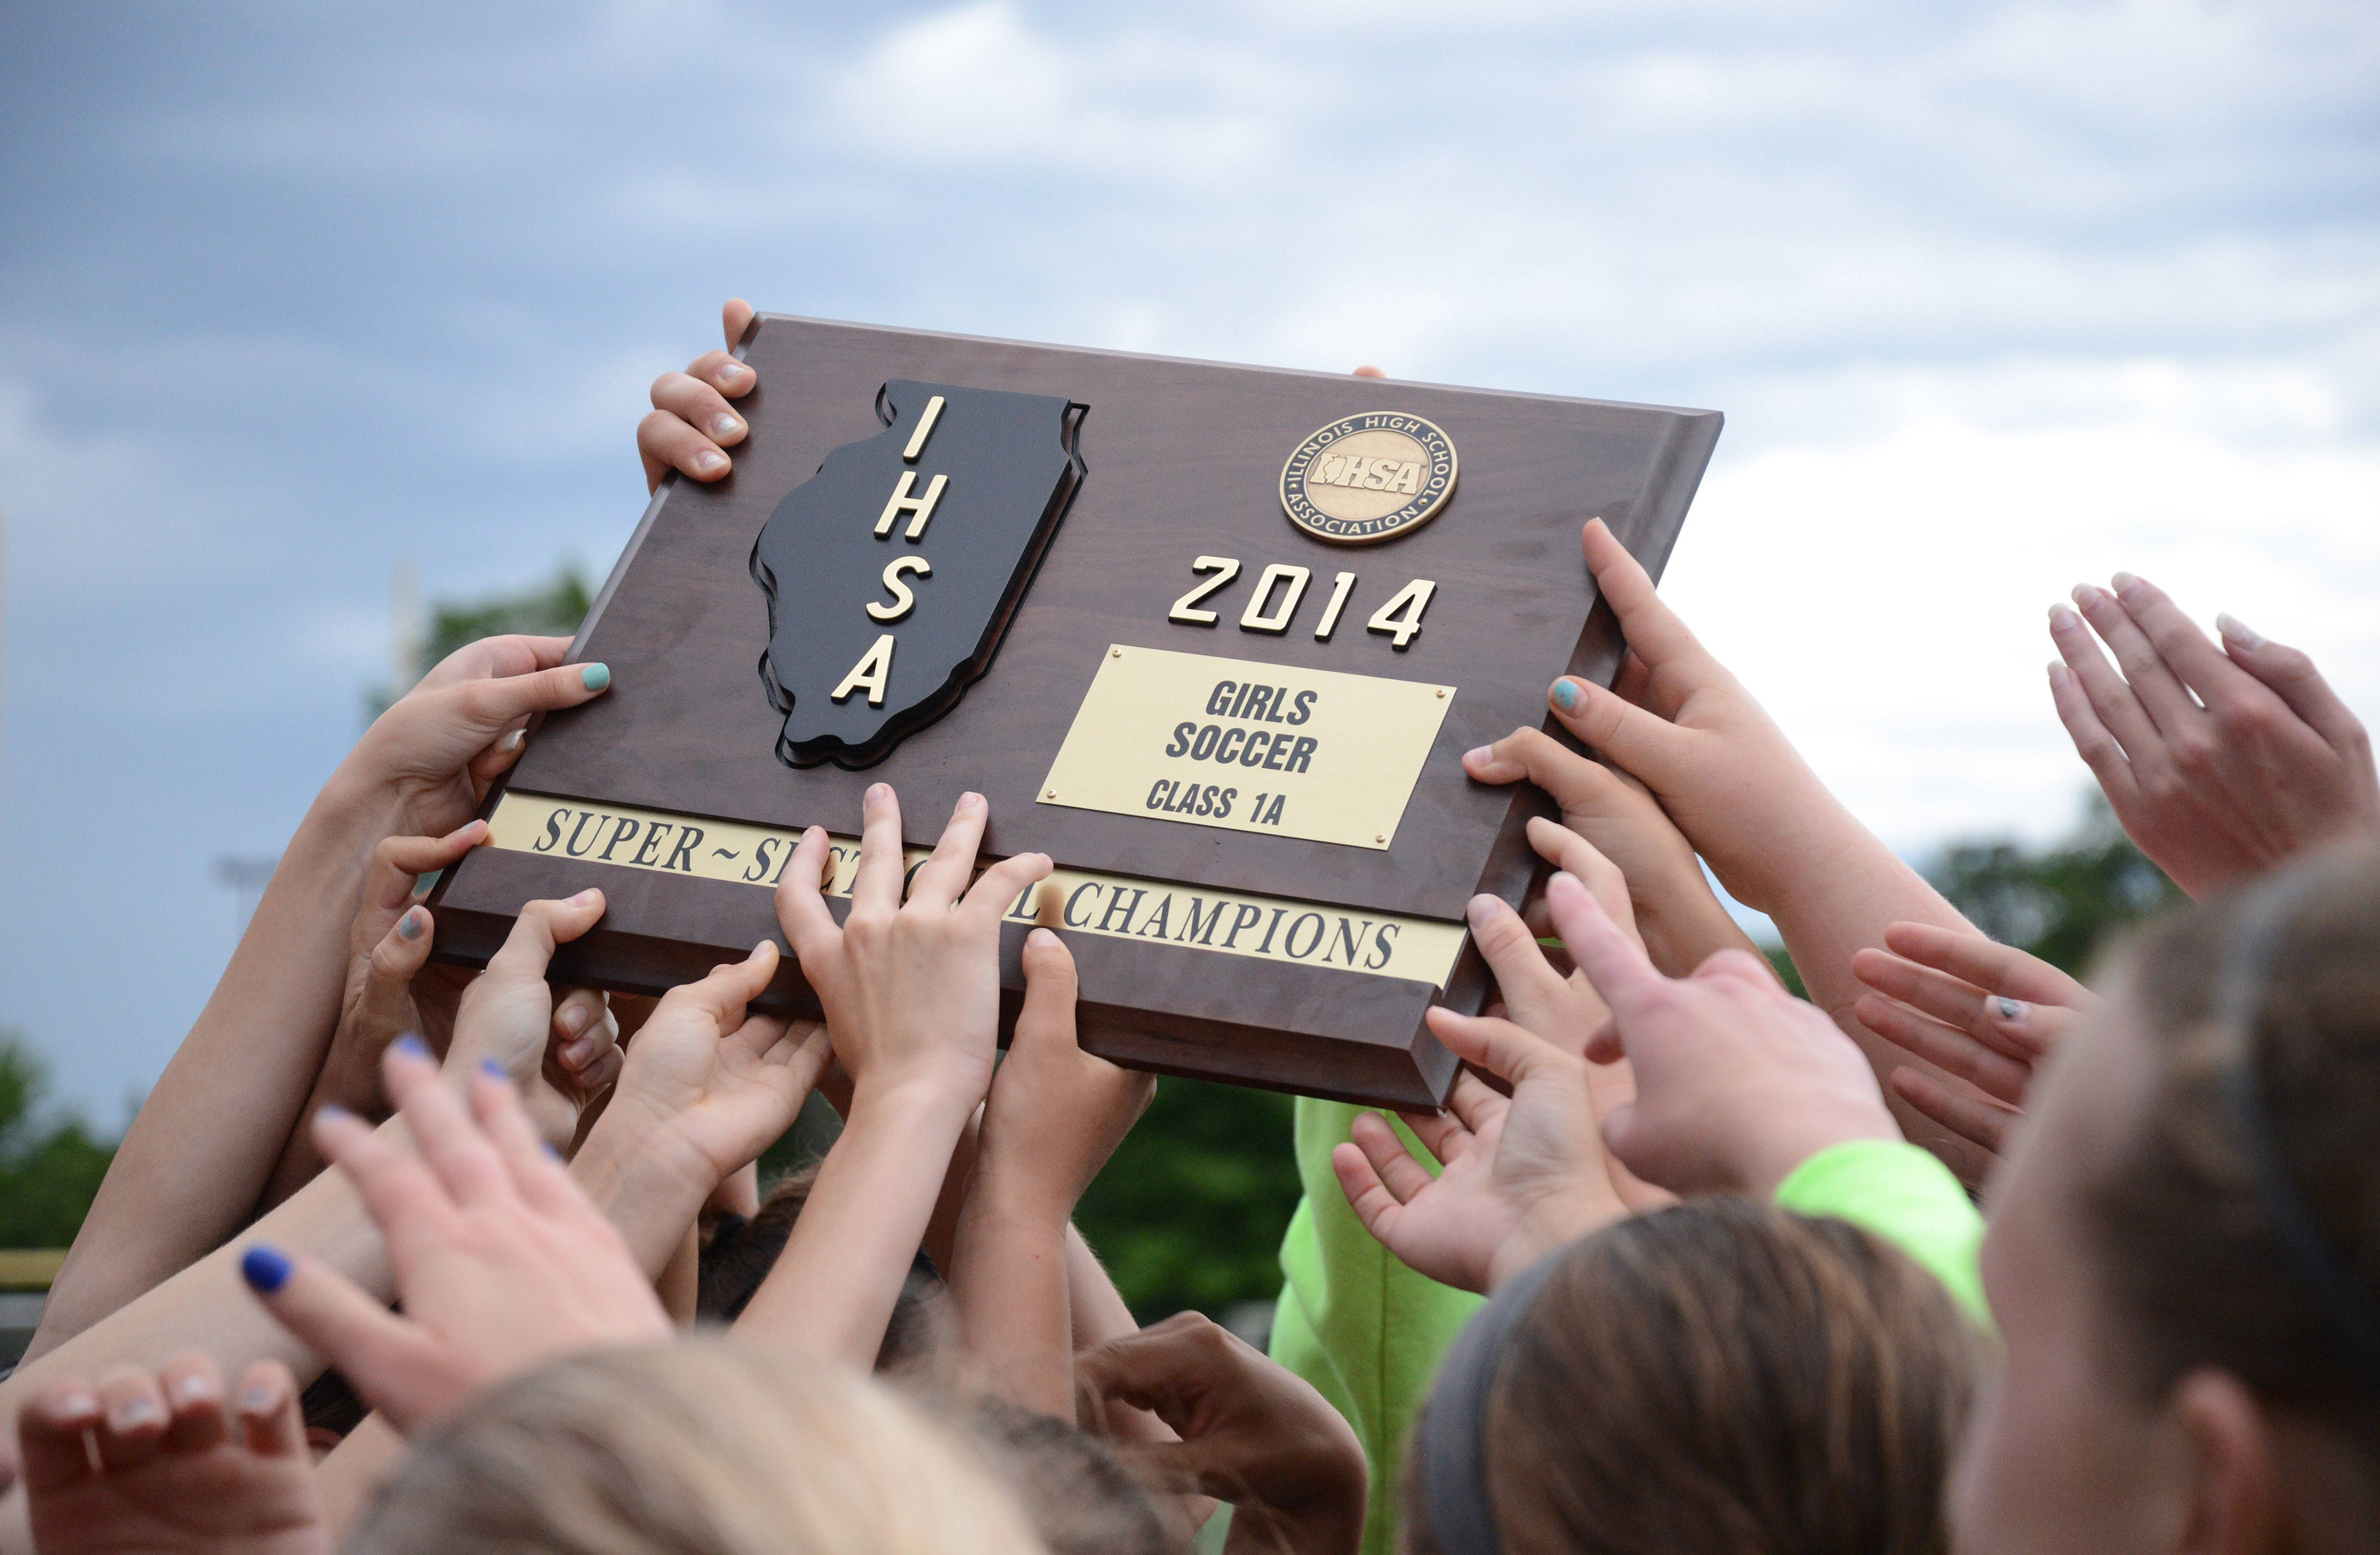 St. Edward teammates swarm their Class 1A supersectional plaque after winning over Chicago Latin at Concordia University in River Forest on Tuesday.